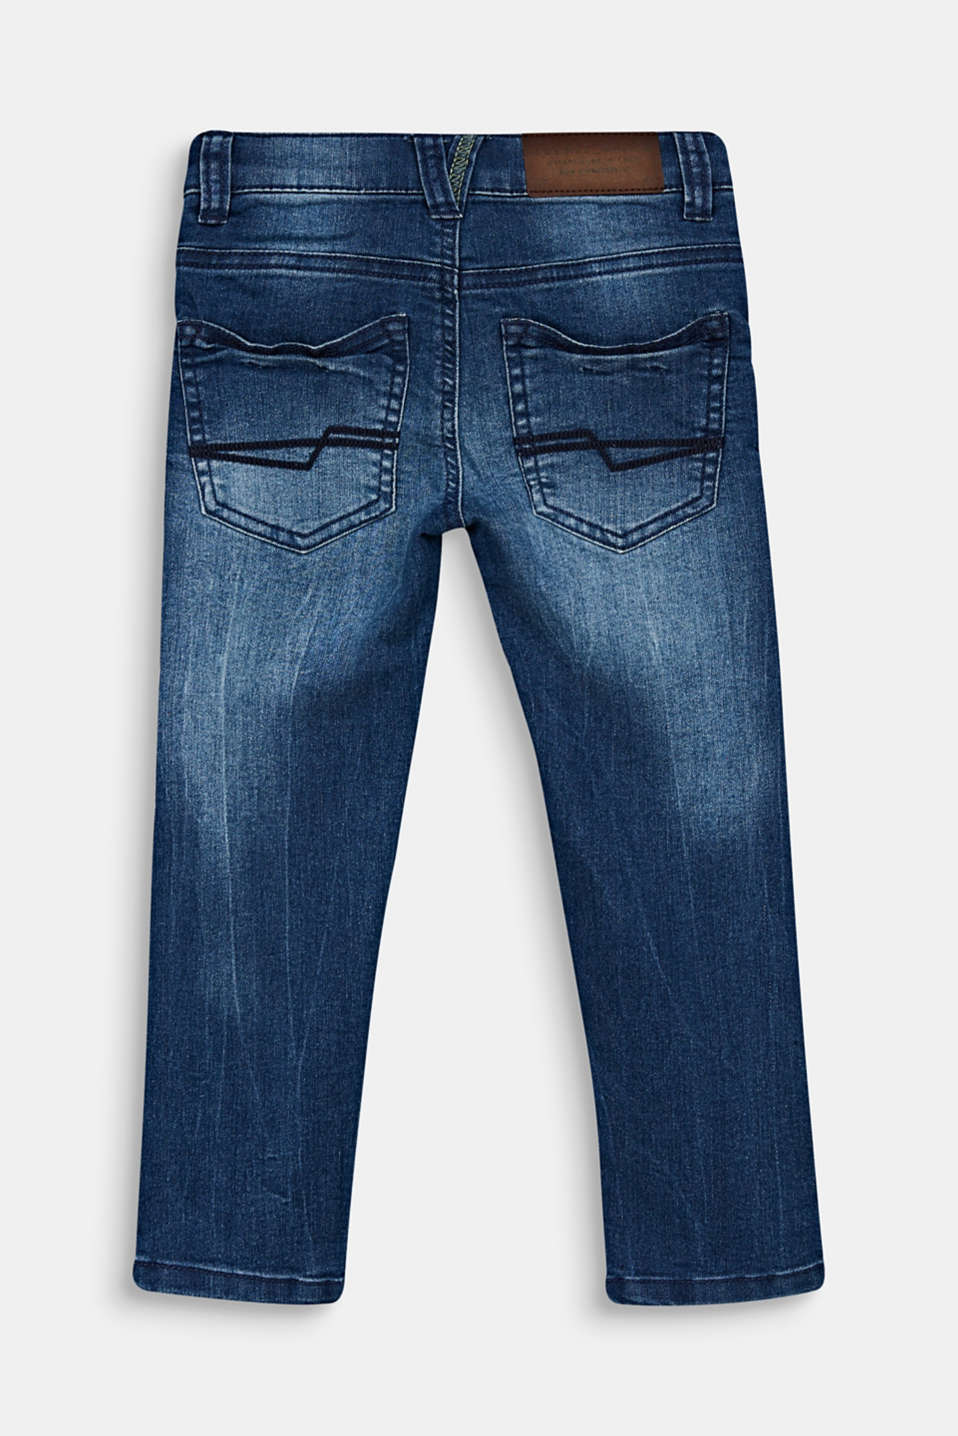 Jeans in a garment-washed look with an adjustable waistband, LIGHT INDIGO D, detail image number 1